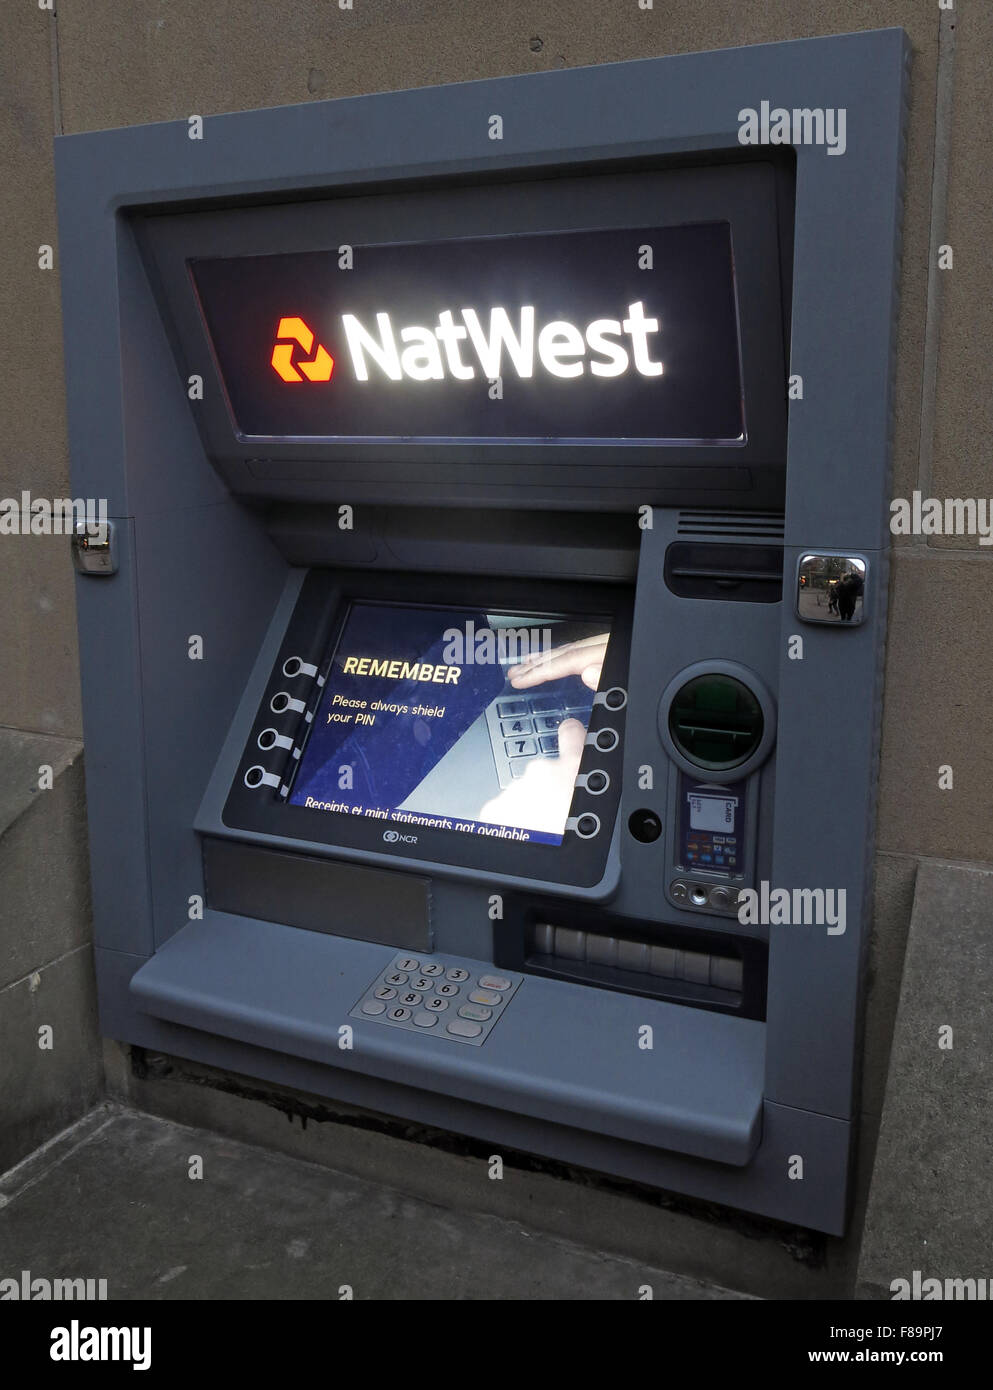 Natwest ATM hole in the wall machine, Warrington, Cheshire, England,UK Stock Photo